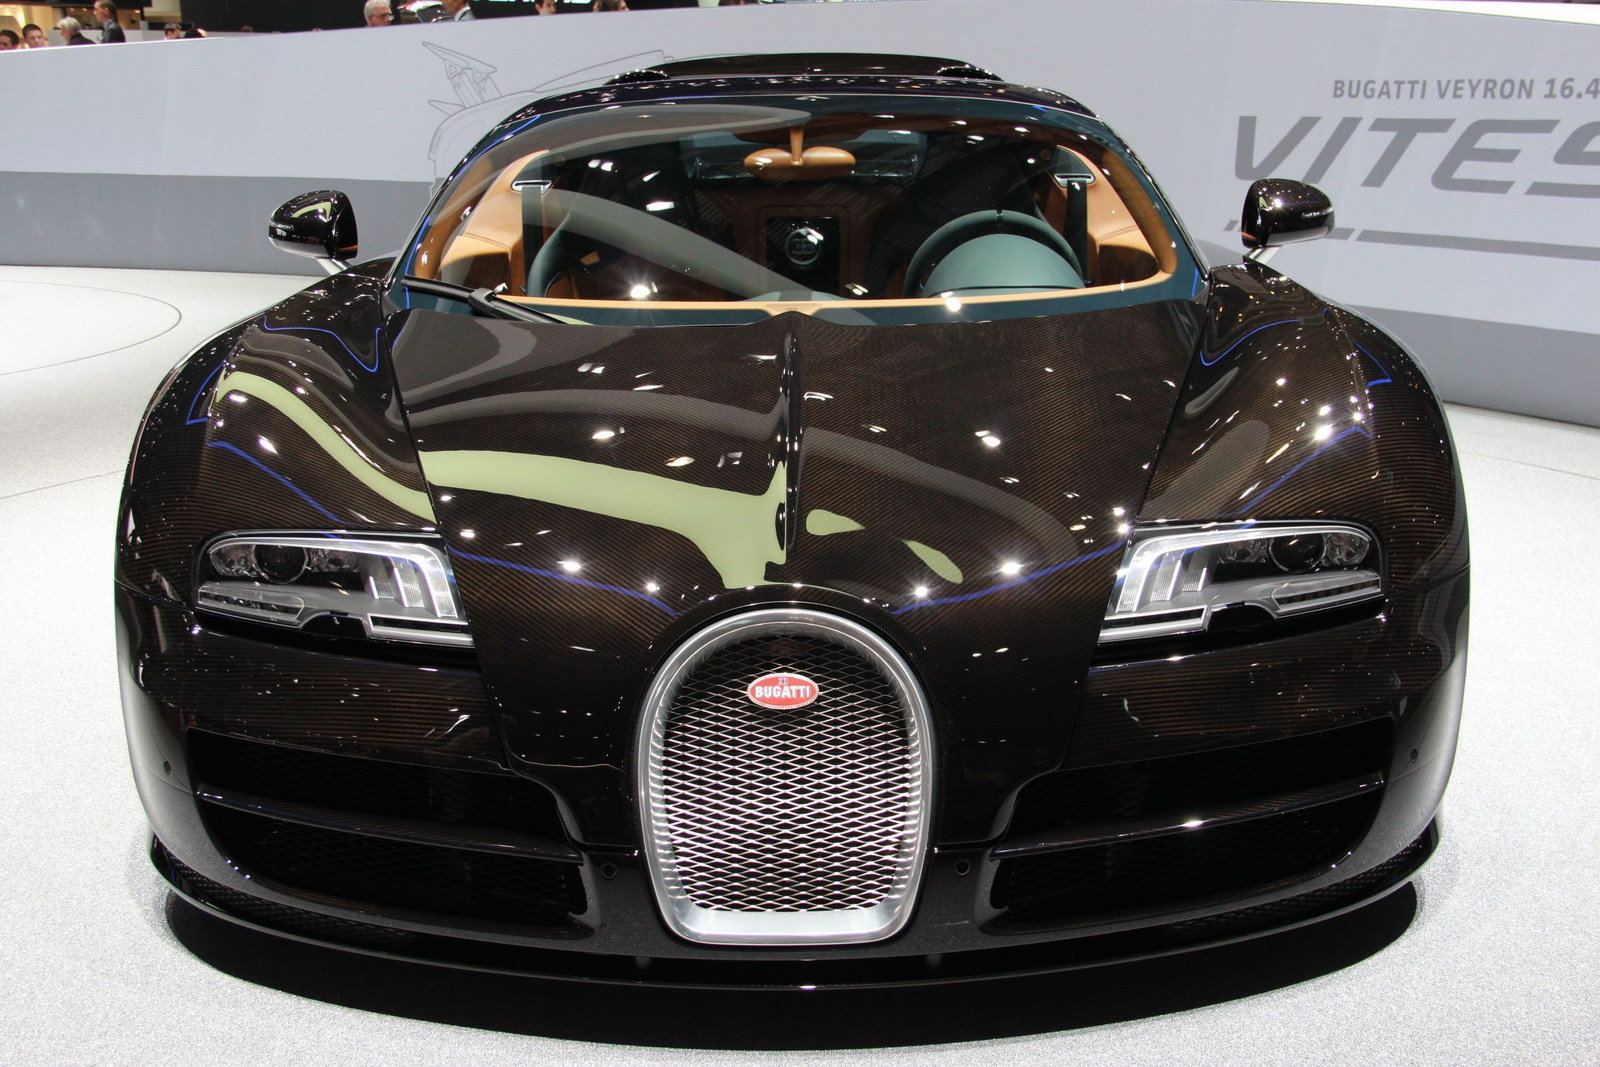 2013 bugatti veyron 16 4 grand sport vitesse black carbon picture 497443 car review top speed. Black Bedroom Furniture Sets. Home Design Ideas